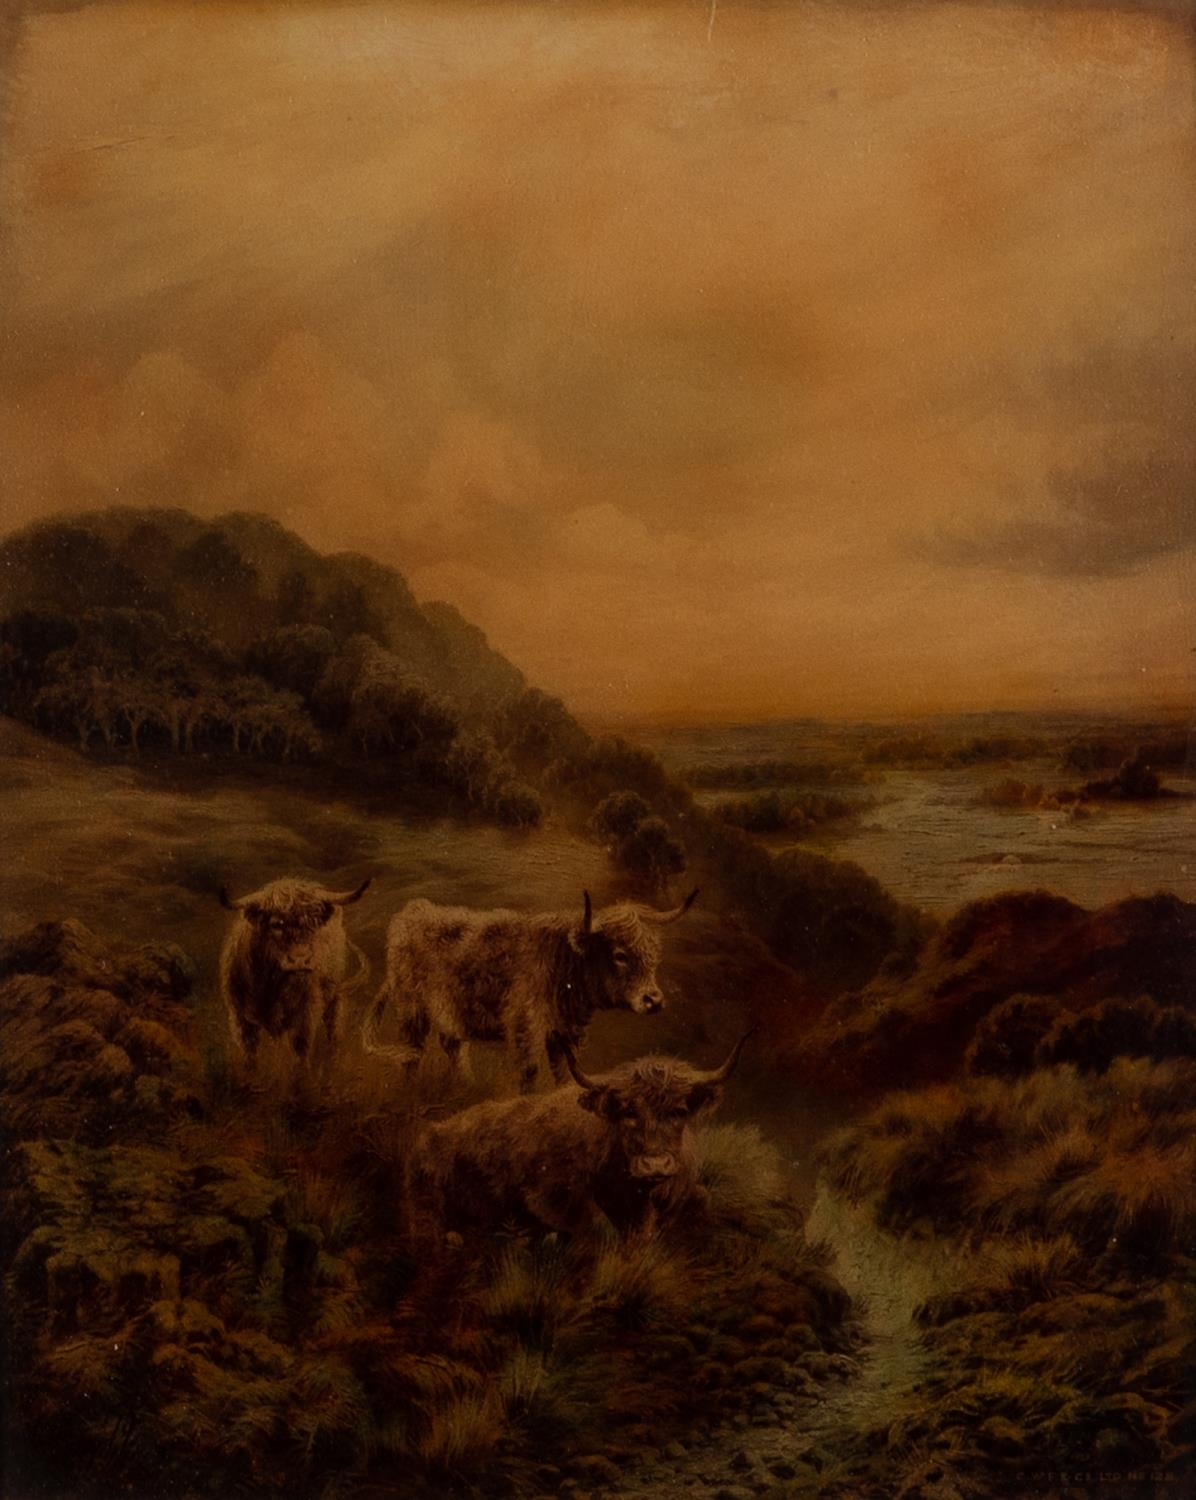 C.W.F. & Co Ltd, CRYSTOLEUM, No. 122 Highland cattle in a landscape 9 ¾? x 8? (24.7cm x 20.3cm)